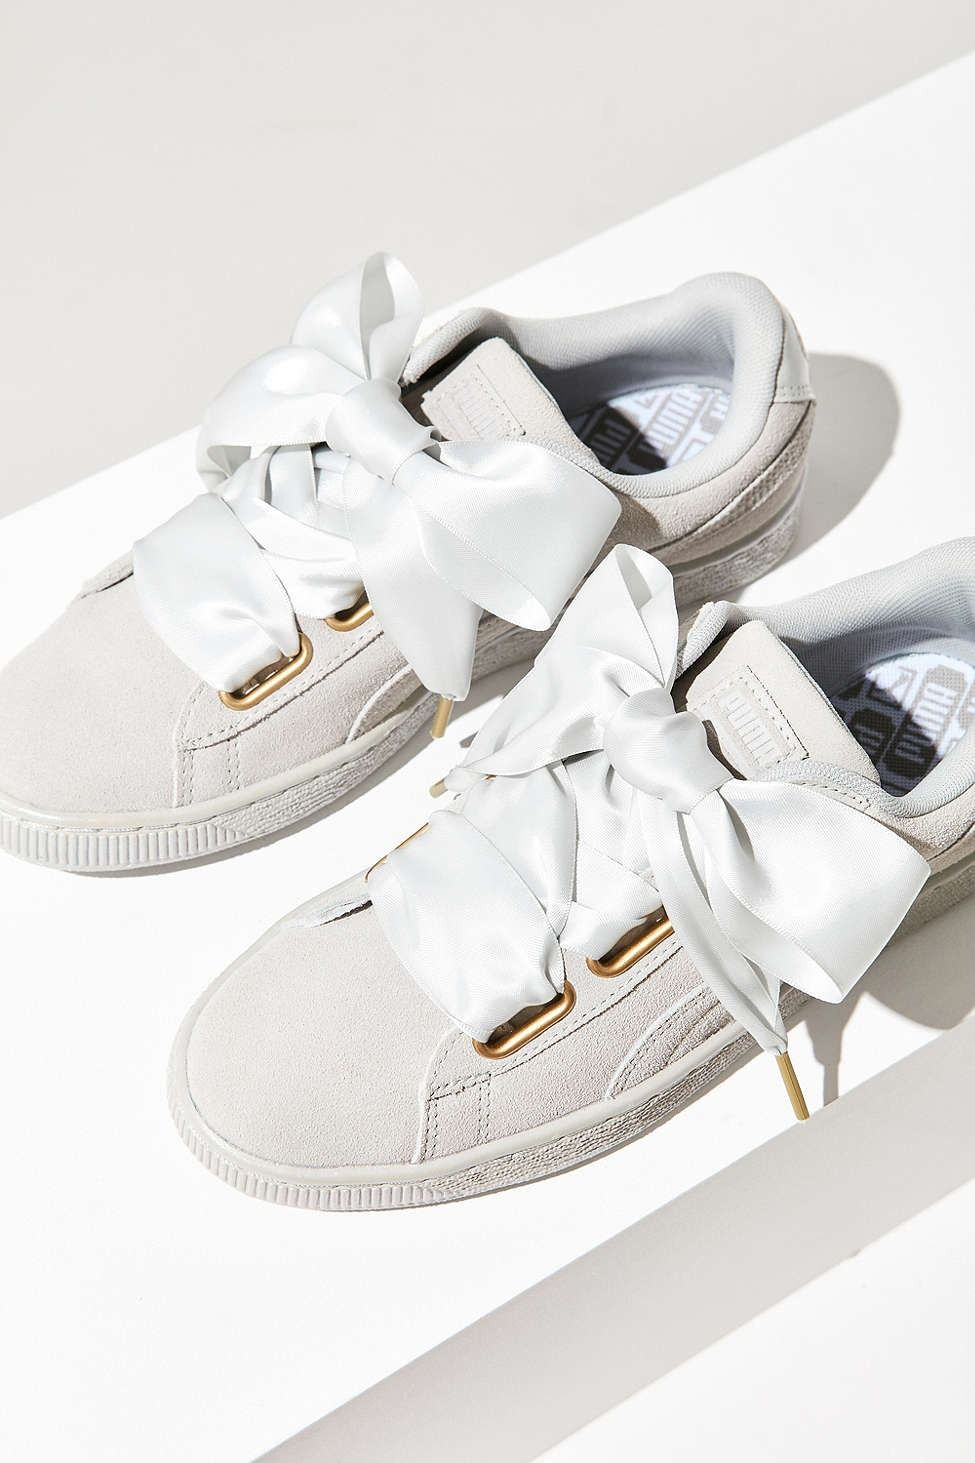 Sneaker Puma Heart OutfittersBco Oro Suede Satin Urban Y tsxhQrdC